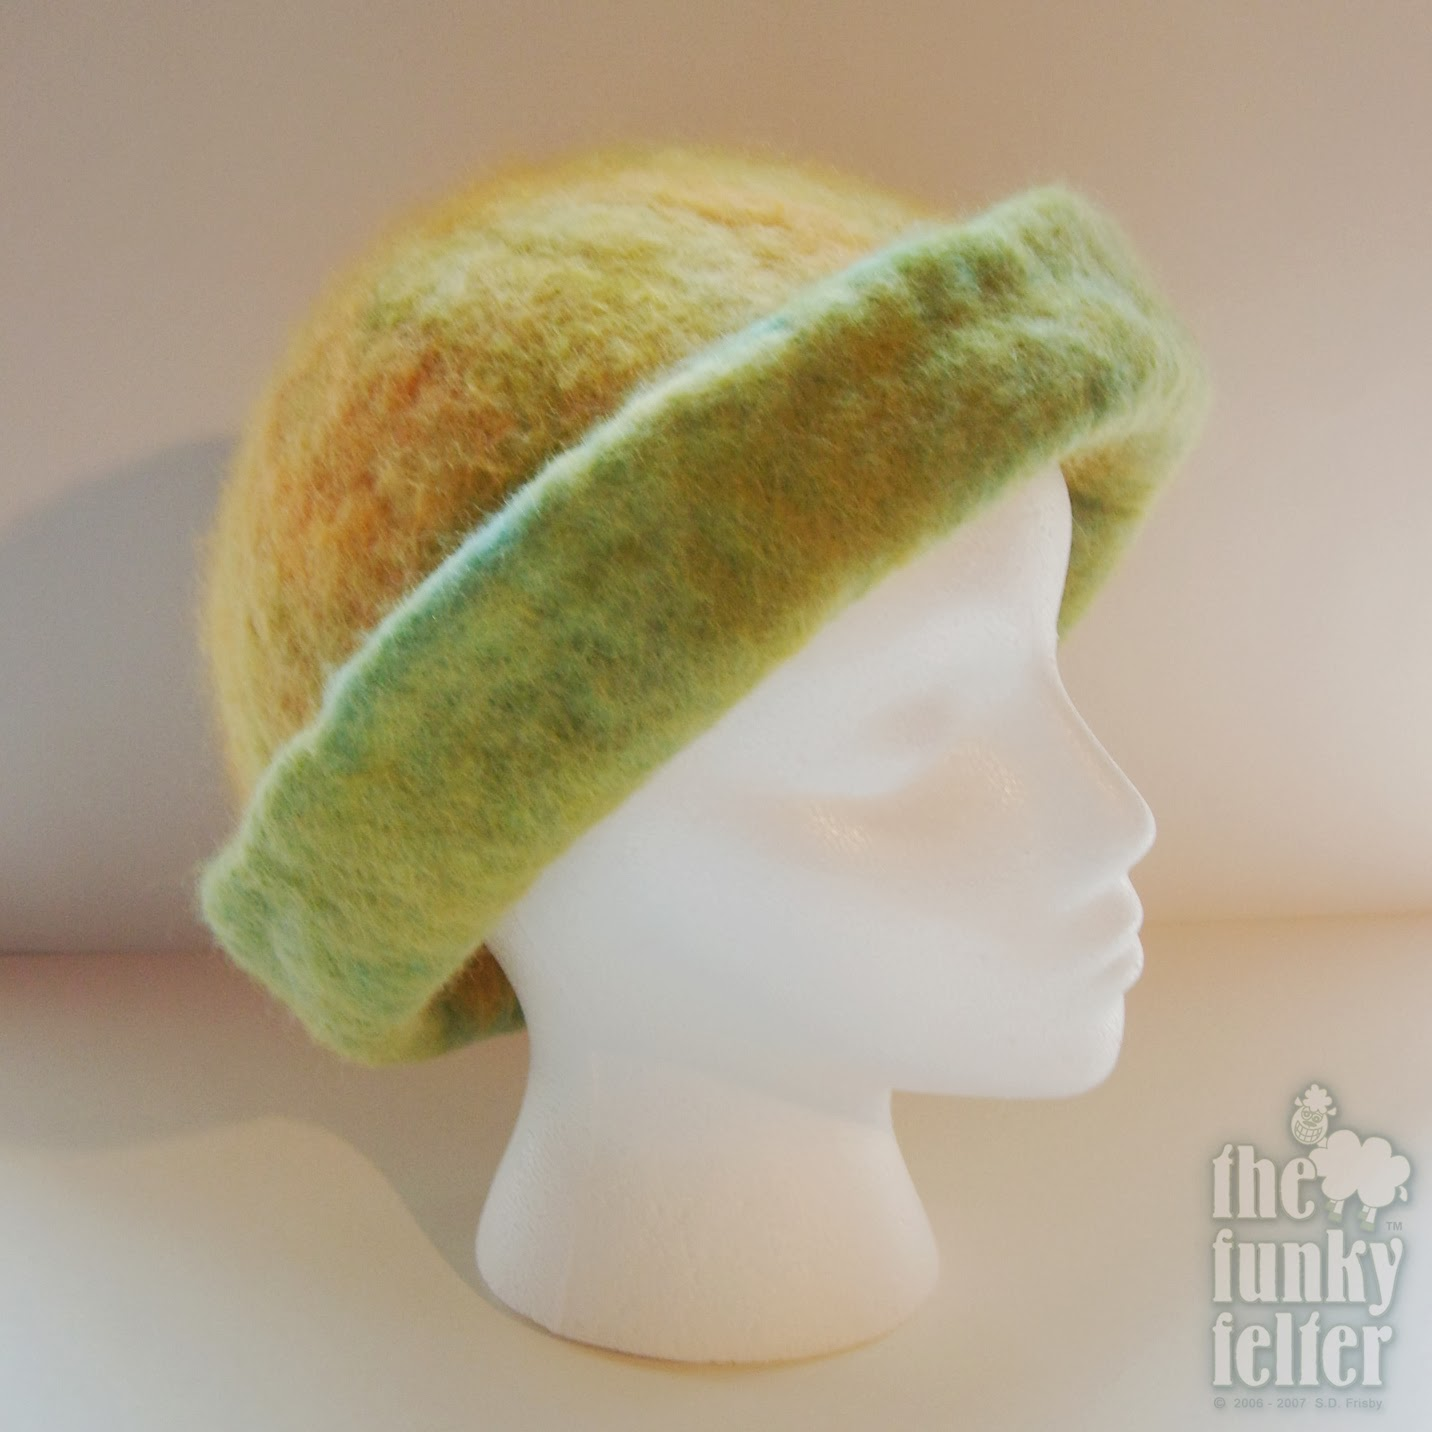 The Funky Felter  How To Make a Felted Hat - A Tutorial for Combined ... 85518e89cd2